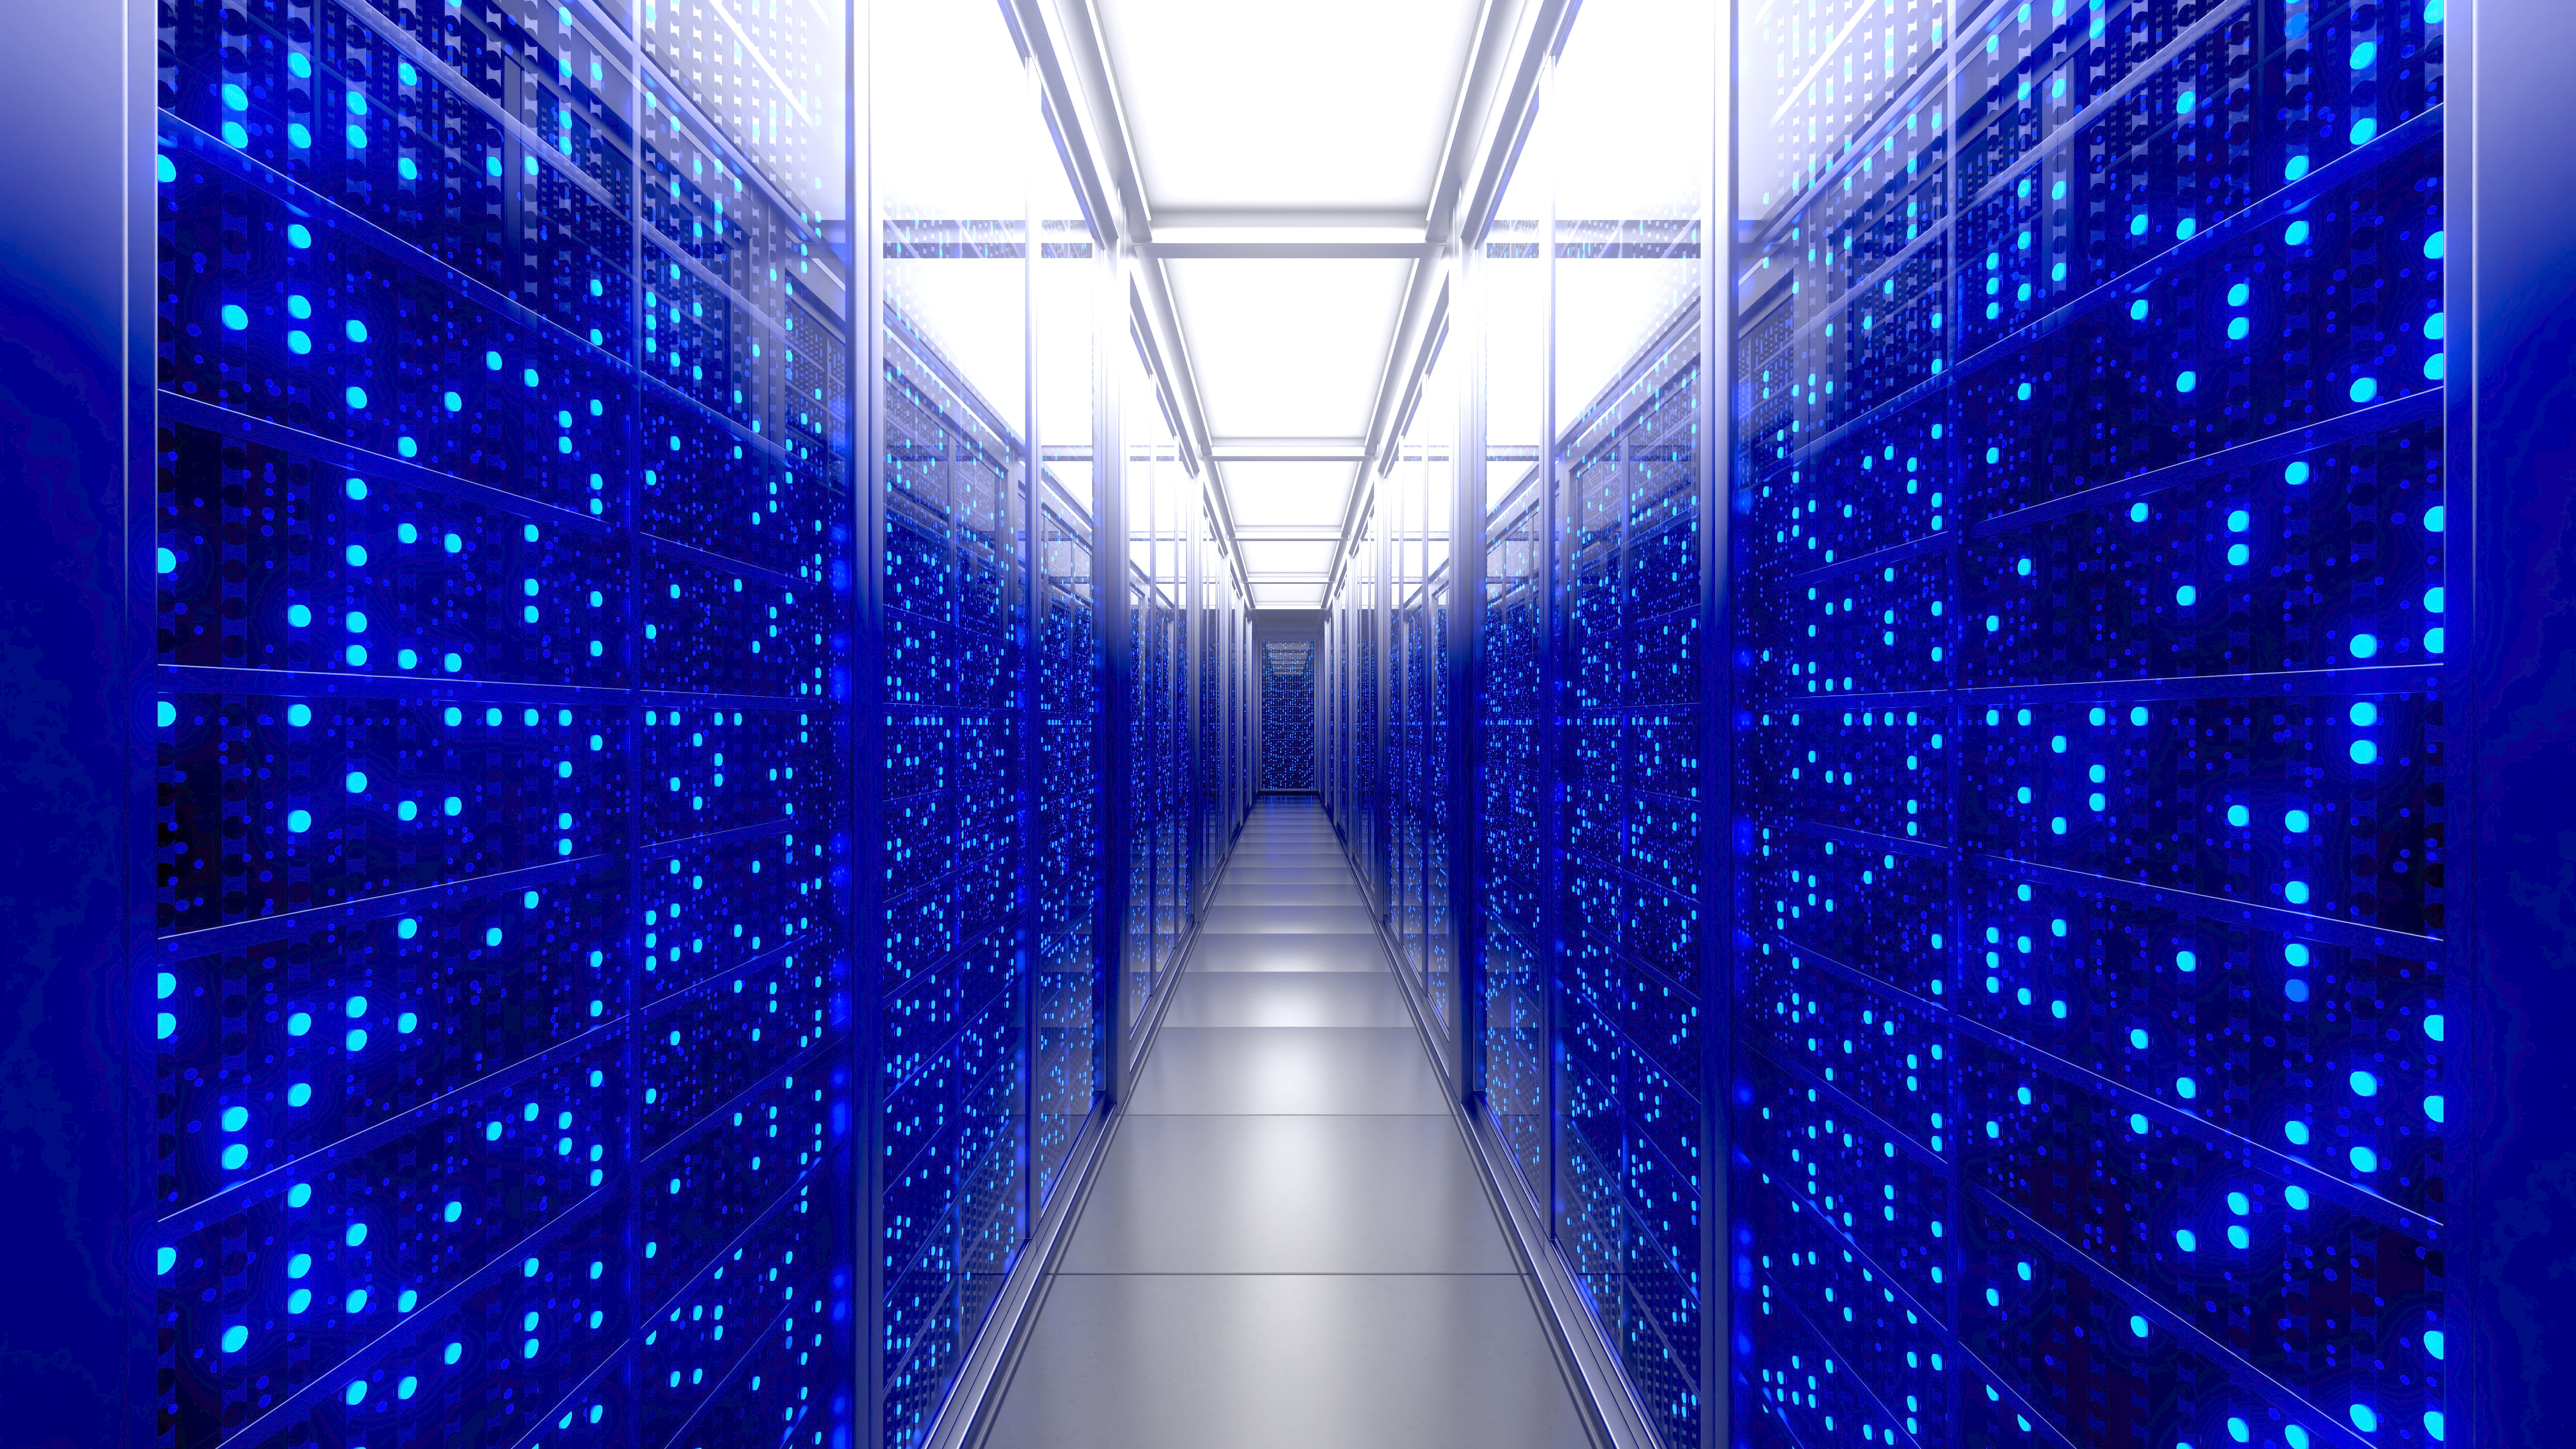 academic-supercomputing-at-research-i-institutions - https://cdn.buttercms.com/1qau7Te1ToqILEoHMYY3